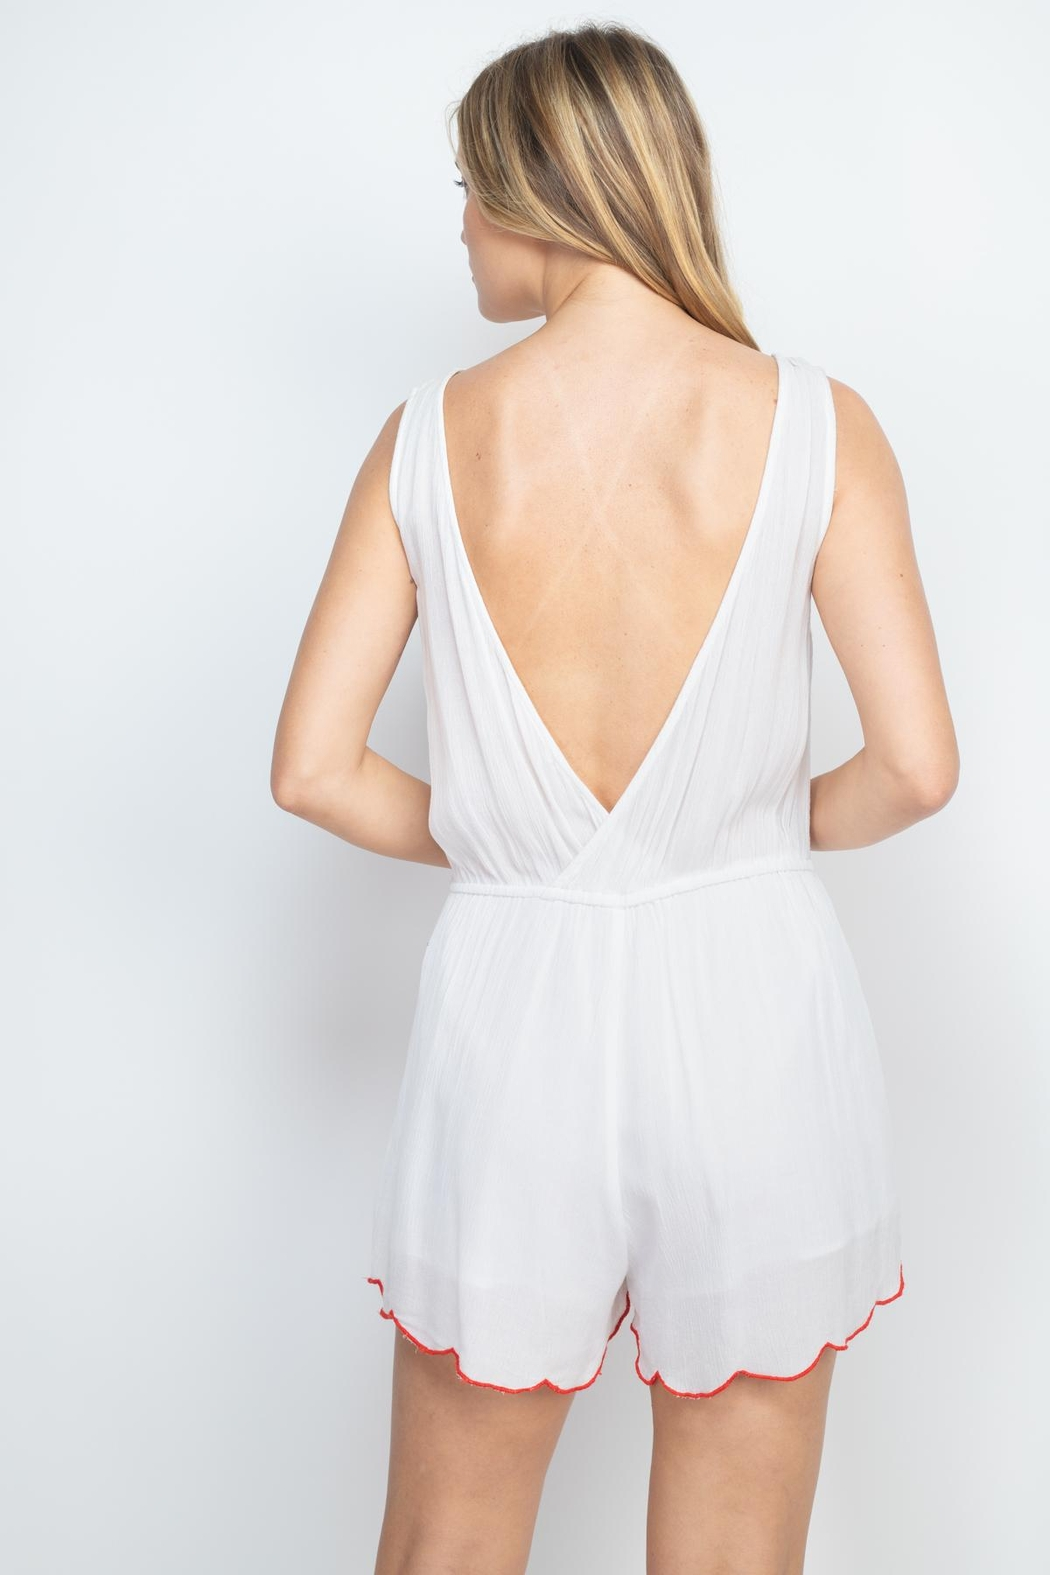 Riah Fashion White-With-Flowers-Embroidery-Romper - Front Full Image